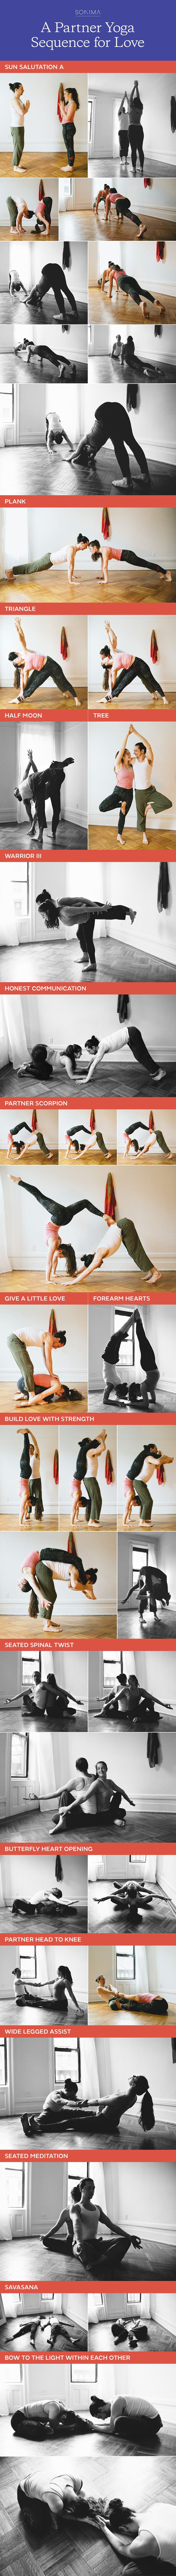 Explore this beautiful partner yoga sequence of heart opening and strengthening ...